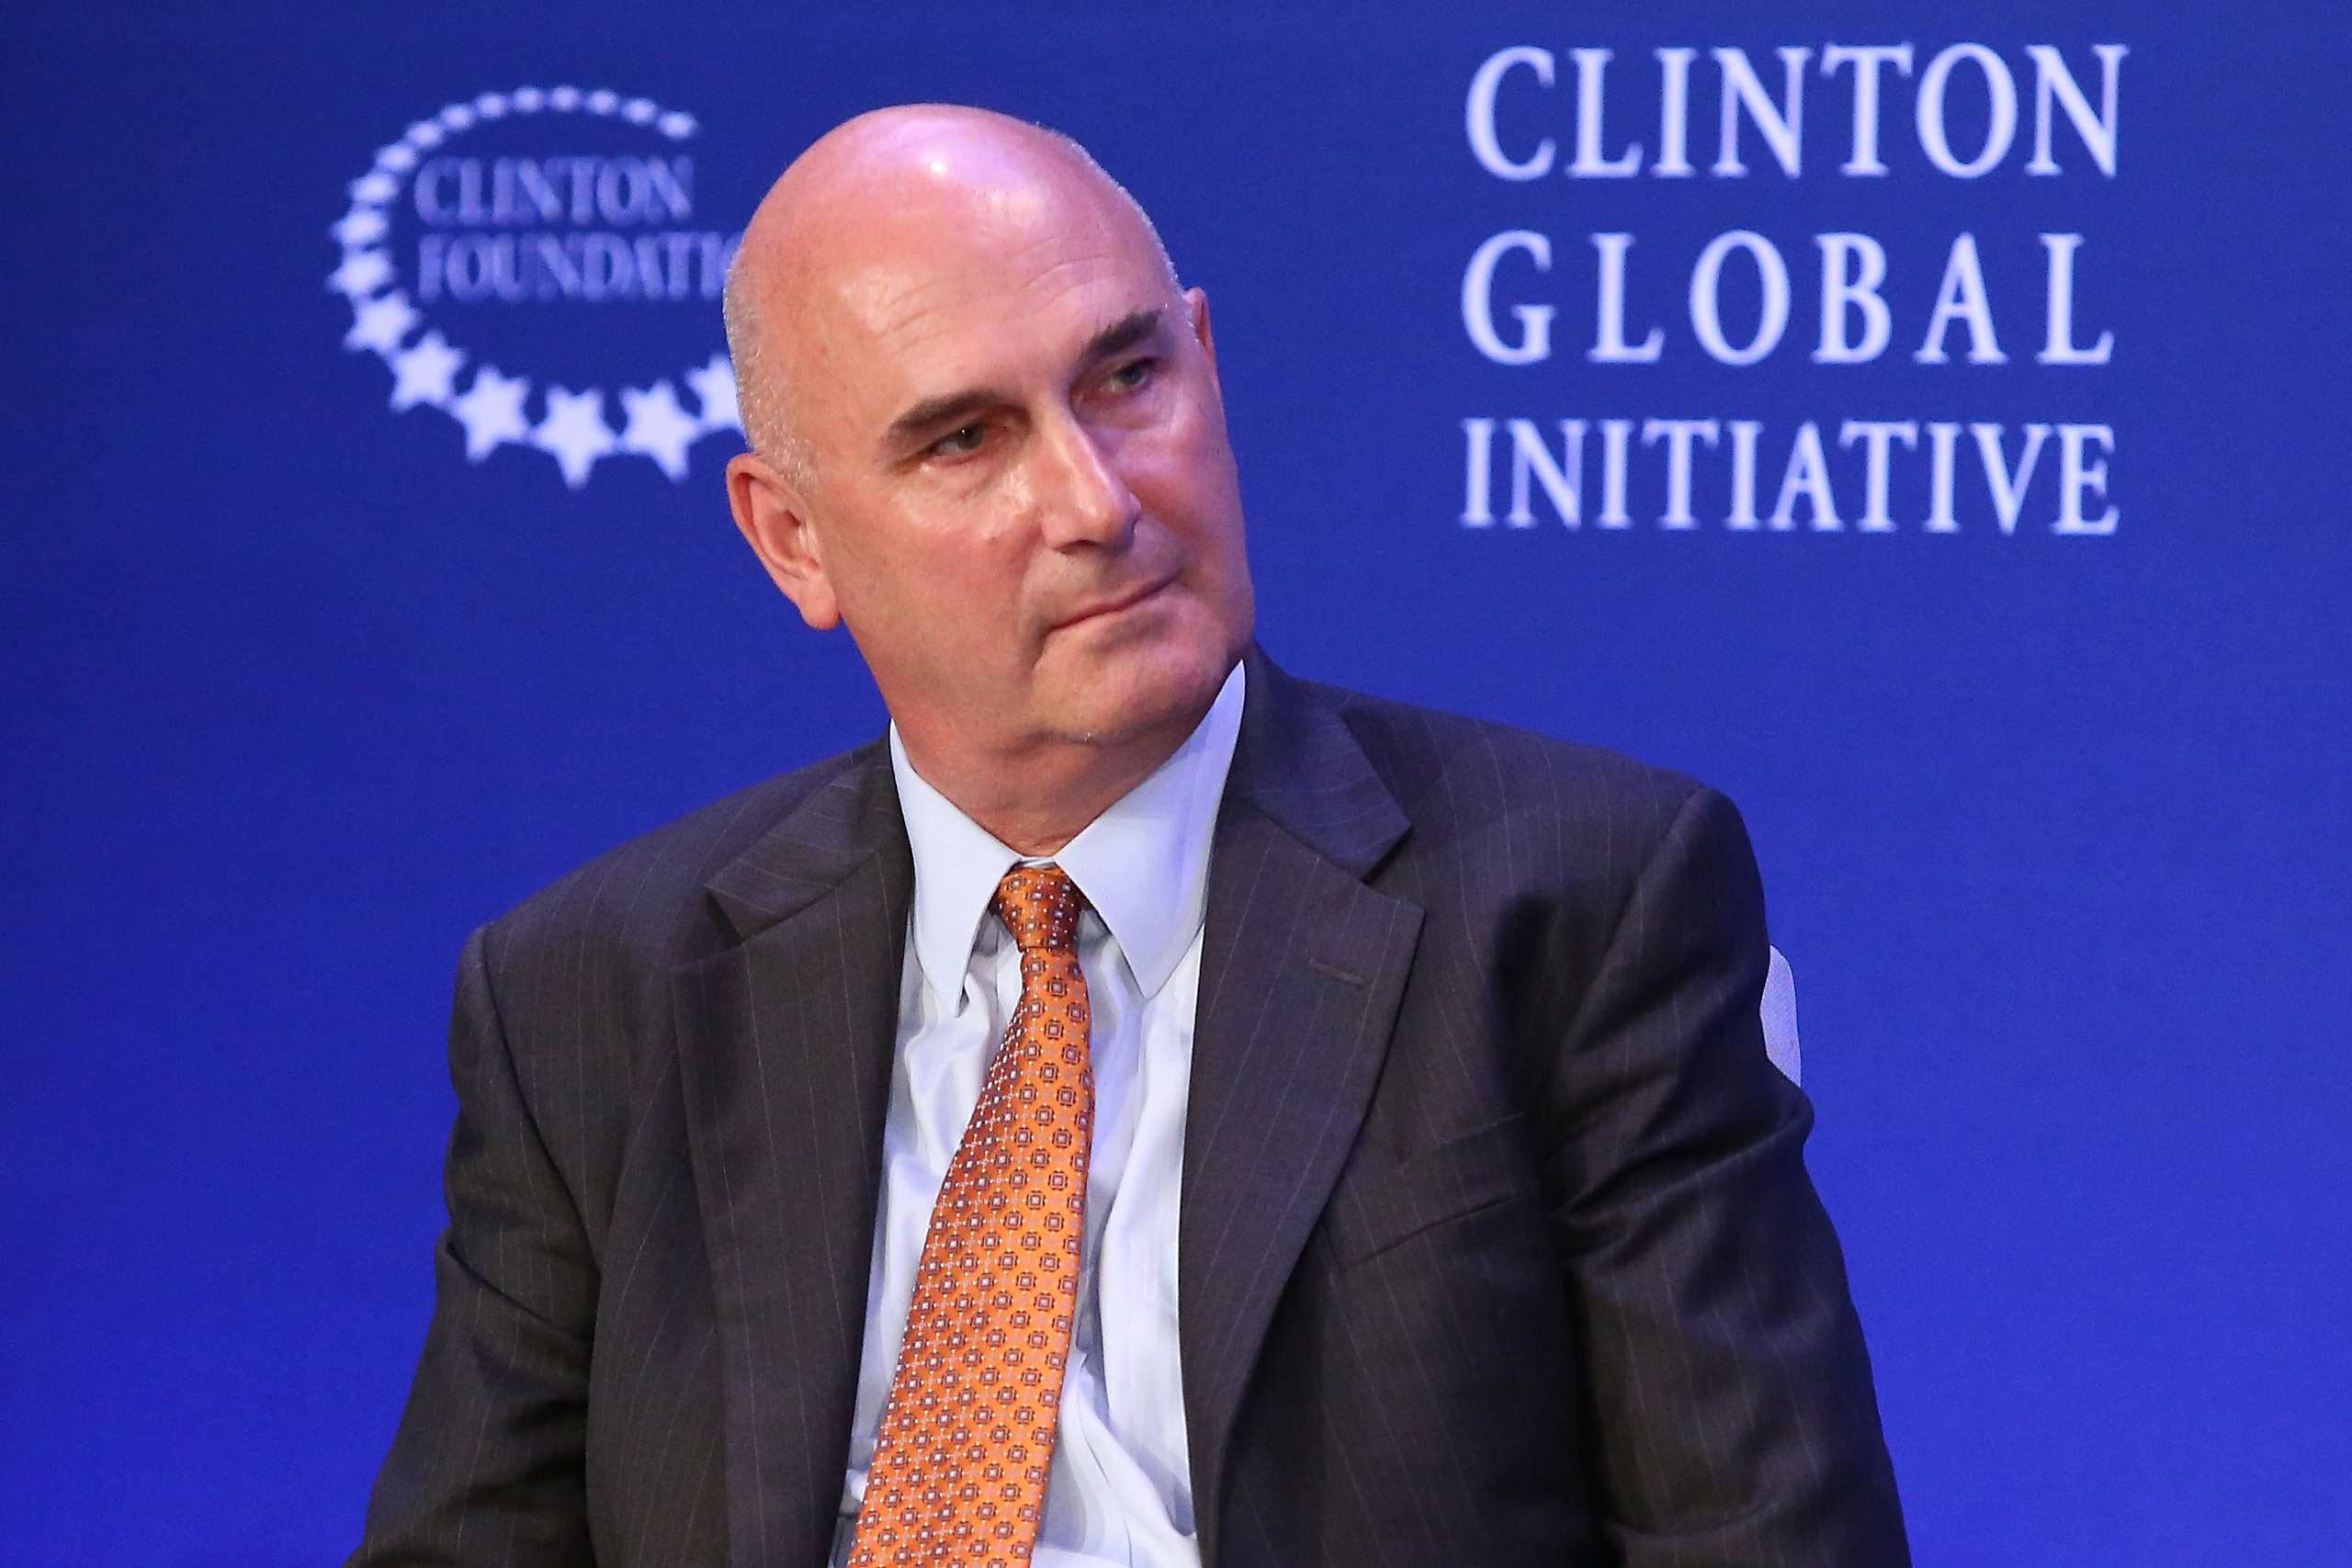 Monsanto CEO Hugh Grant speaks during the 2015 Clinton Global Initiative Annual Meeting at Sheraton Times Square on Sept. 28, 2015 in New York City.